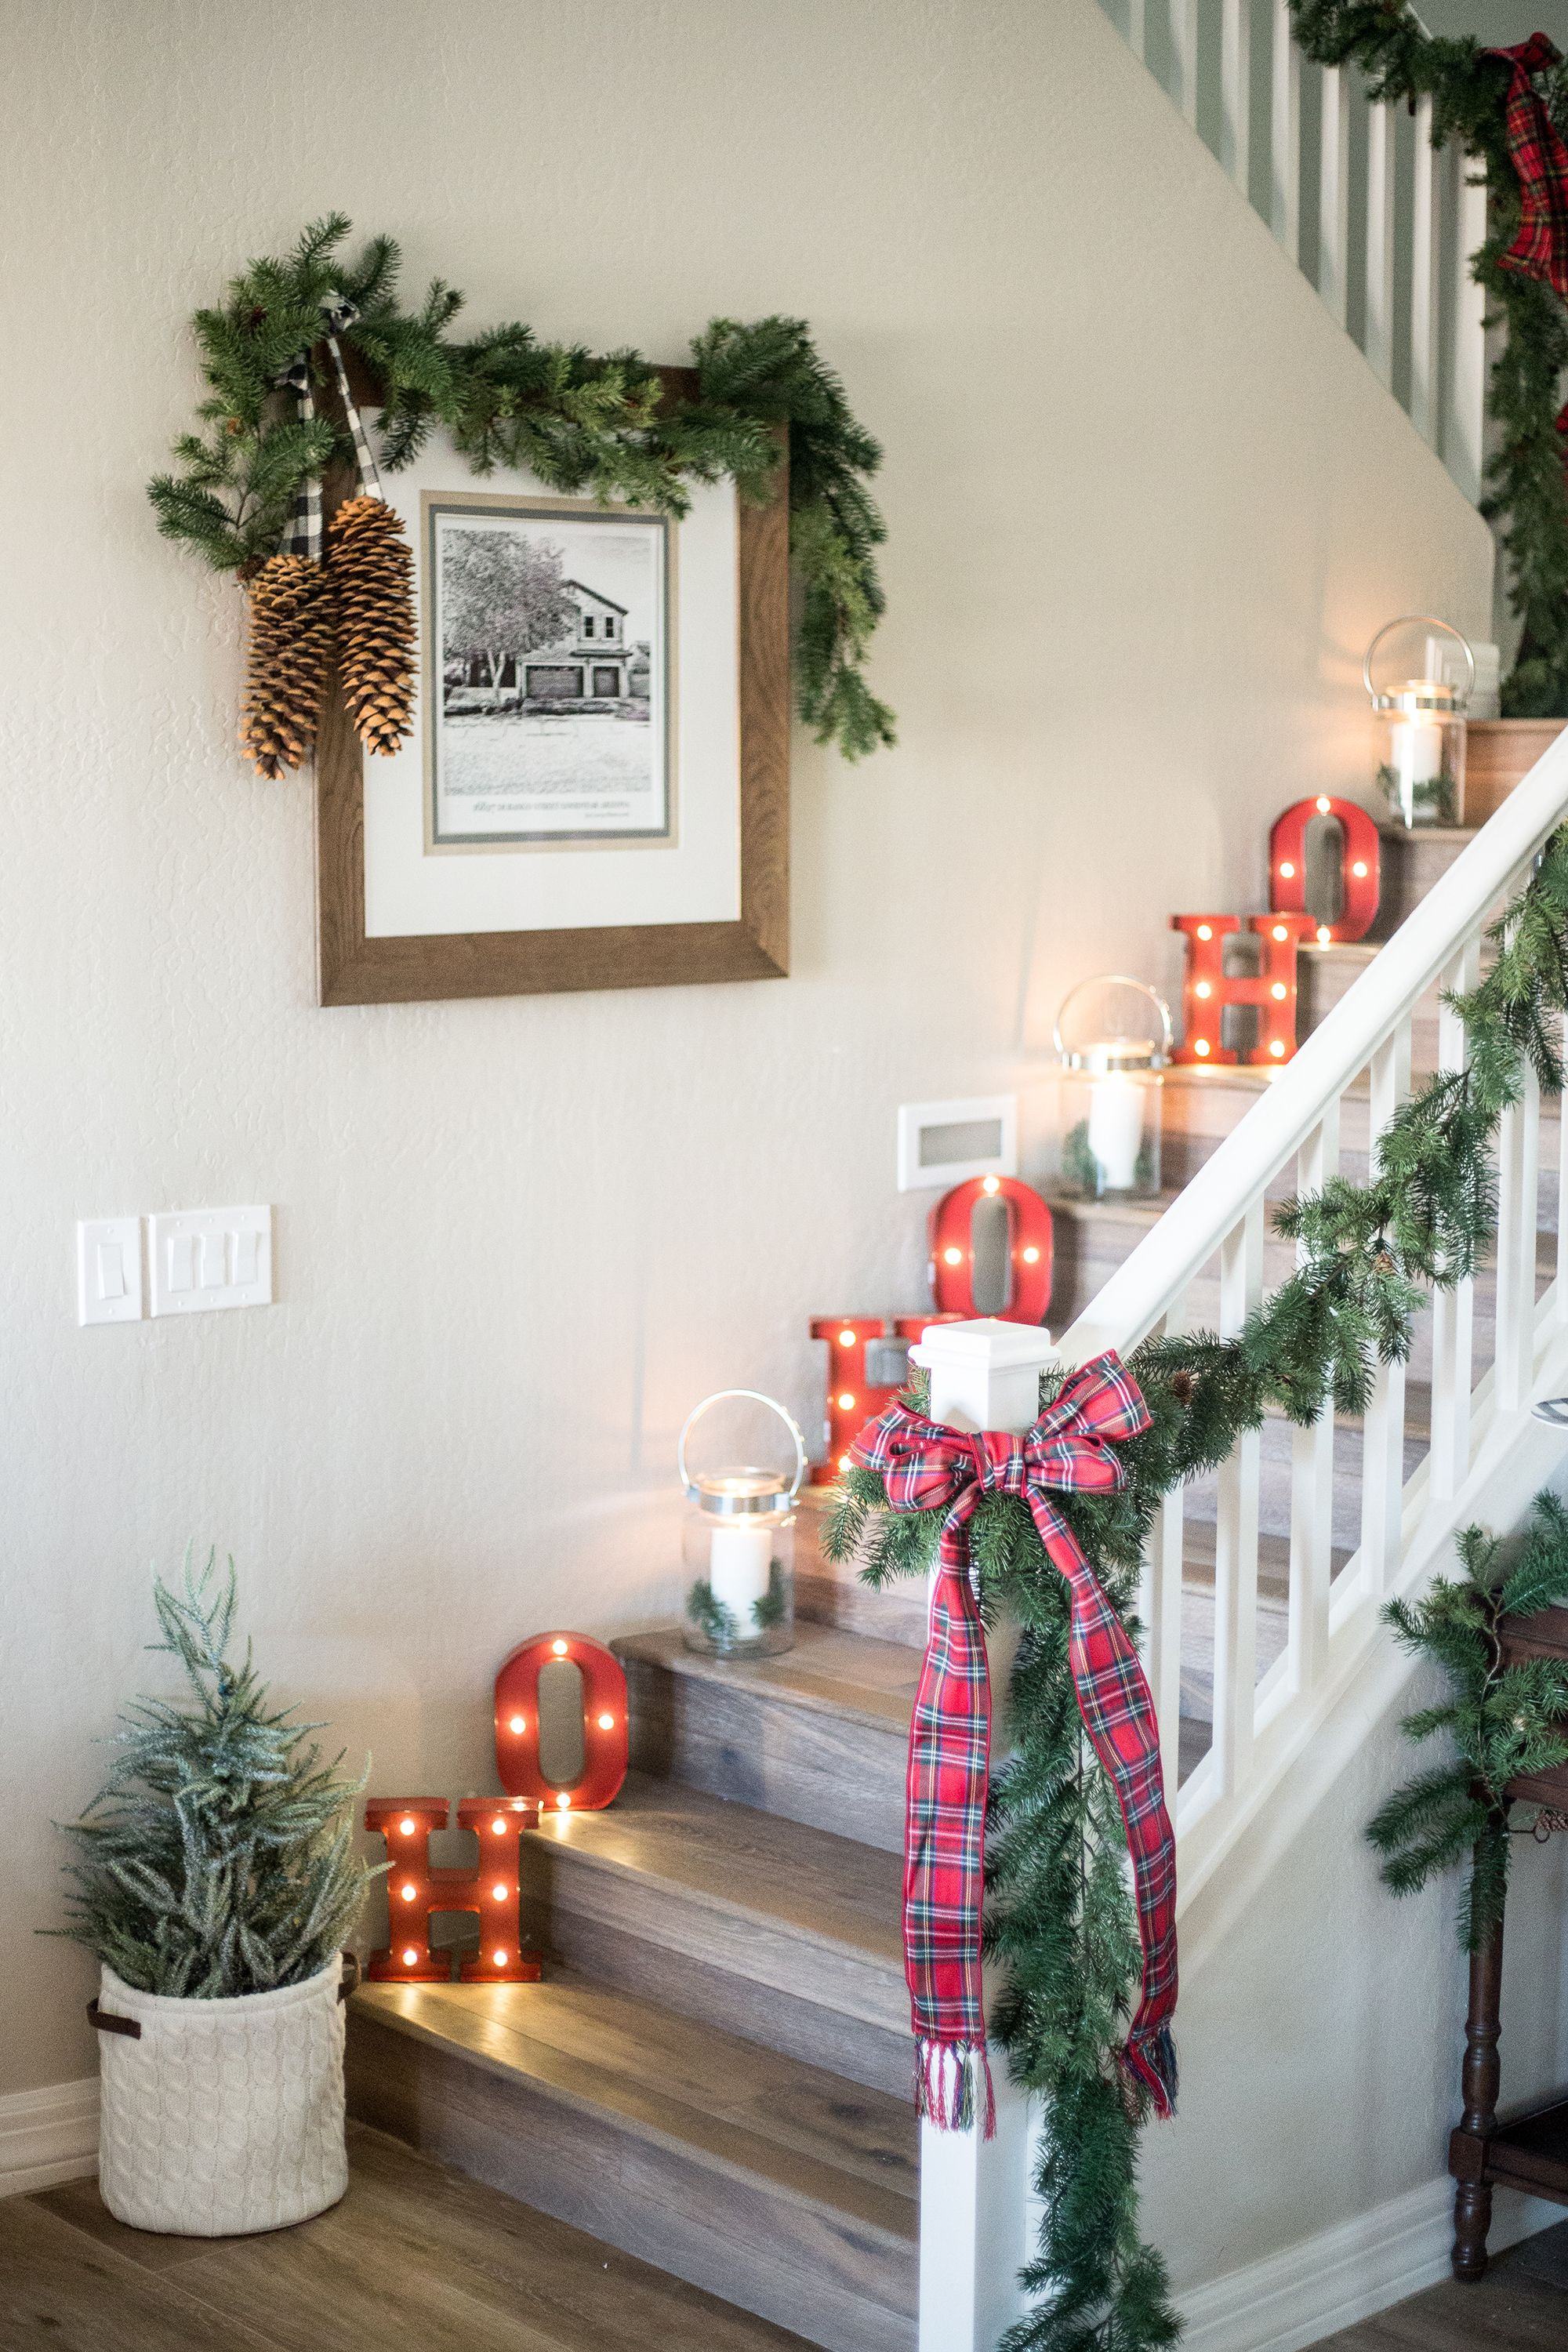 christmas light ideas & Best Christmas Light Ideas For Small Spaces - How to Decorate with ...